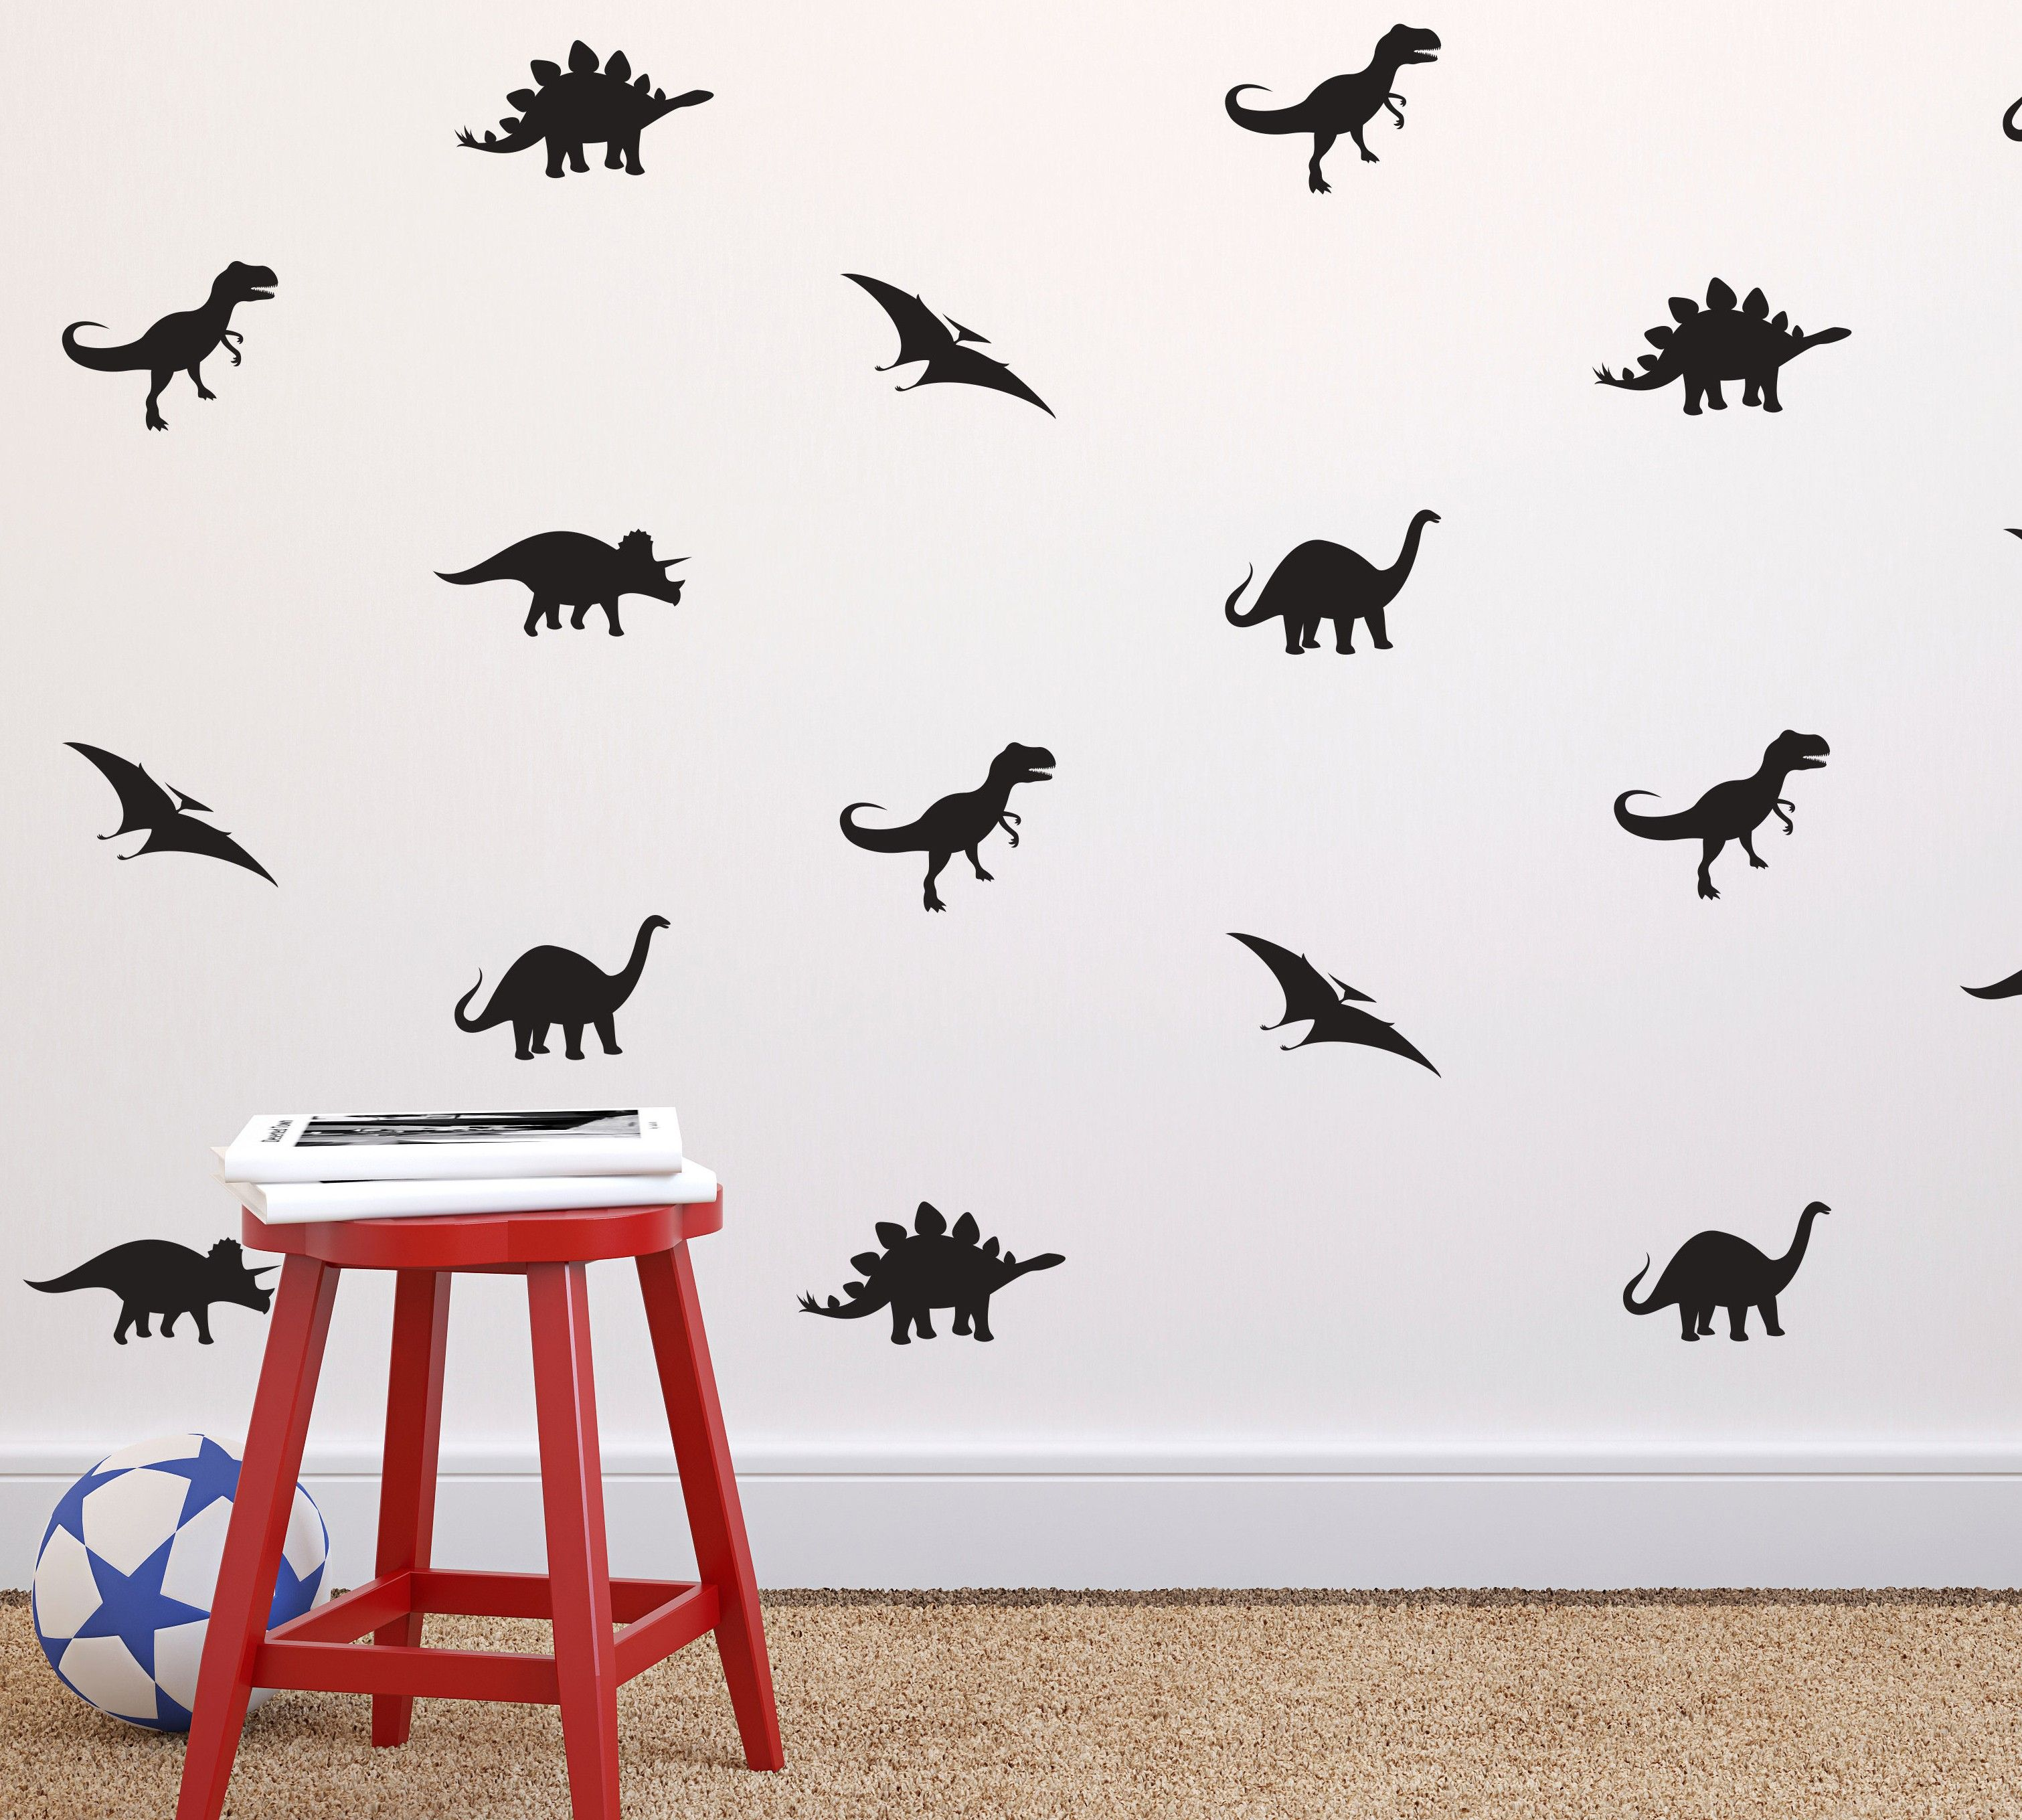 Tiny Dinosaurs Wall Pattern Wall Decal | Dana Decals  sc 1 st  Pinterest : patterned wall decals - www.pureclipart.com